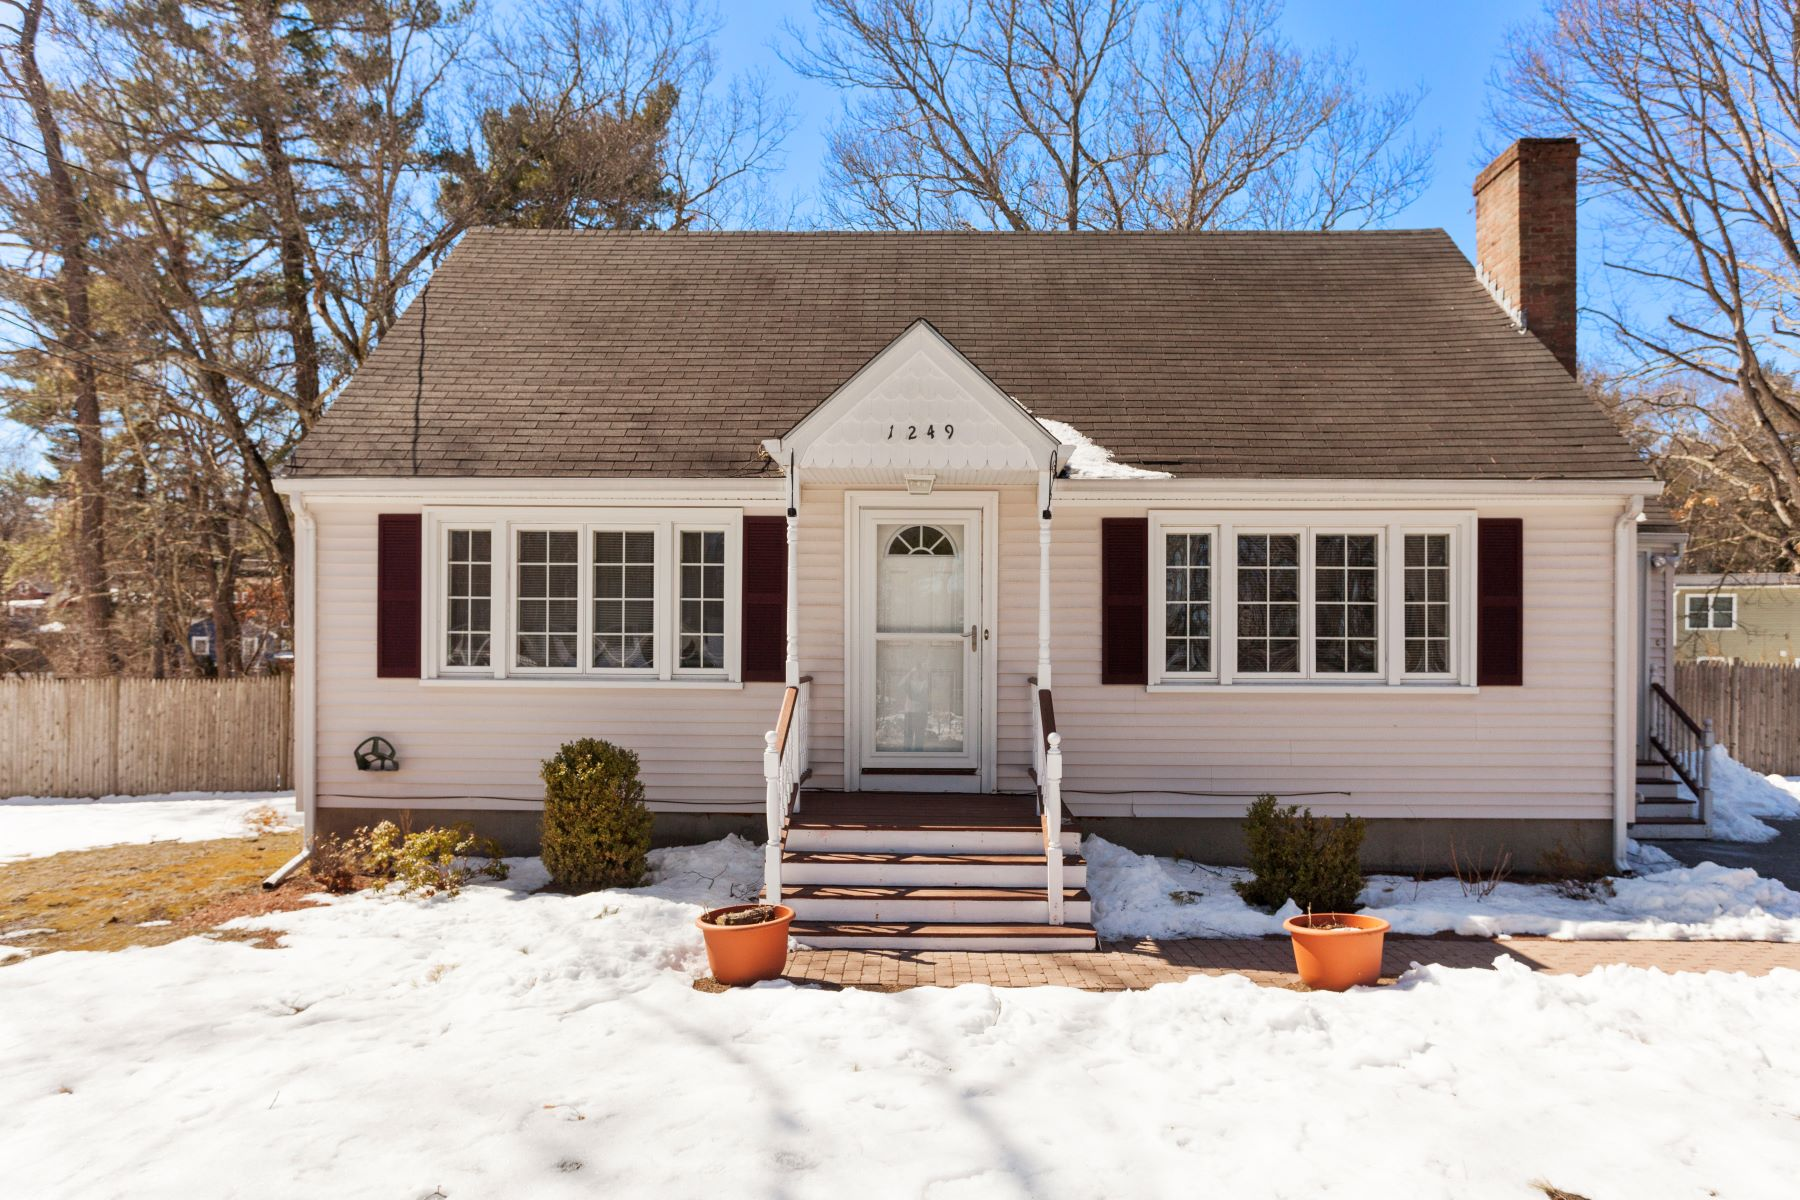 Single Family Home for Sale at 3 bedroom Cape home in Tewksbury 1249 Whipple Road Tewksbury, Massachusetts 01876 United States